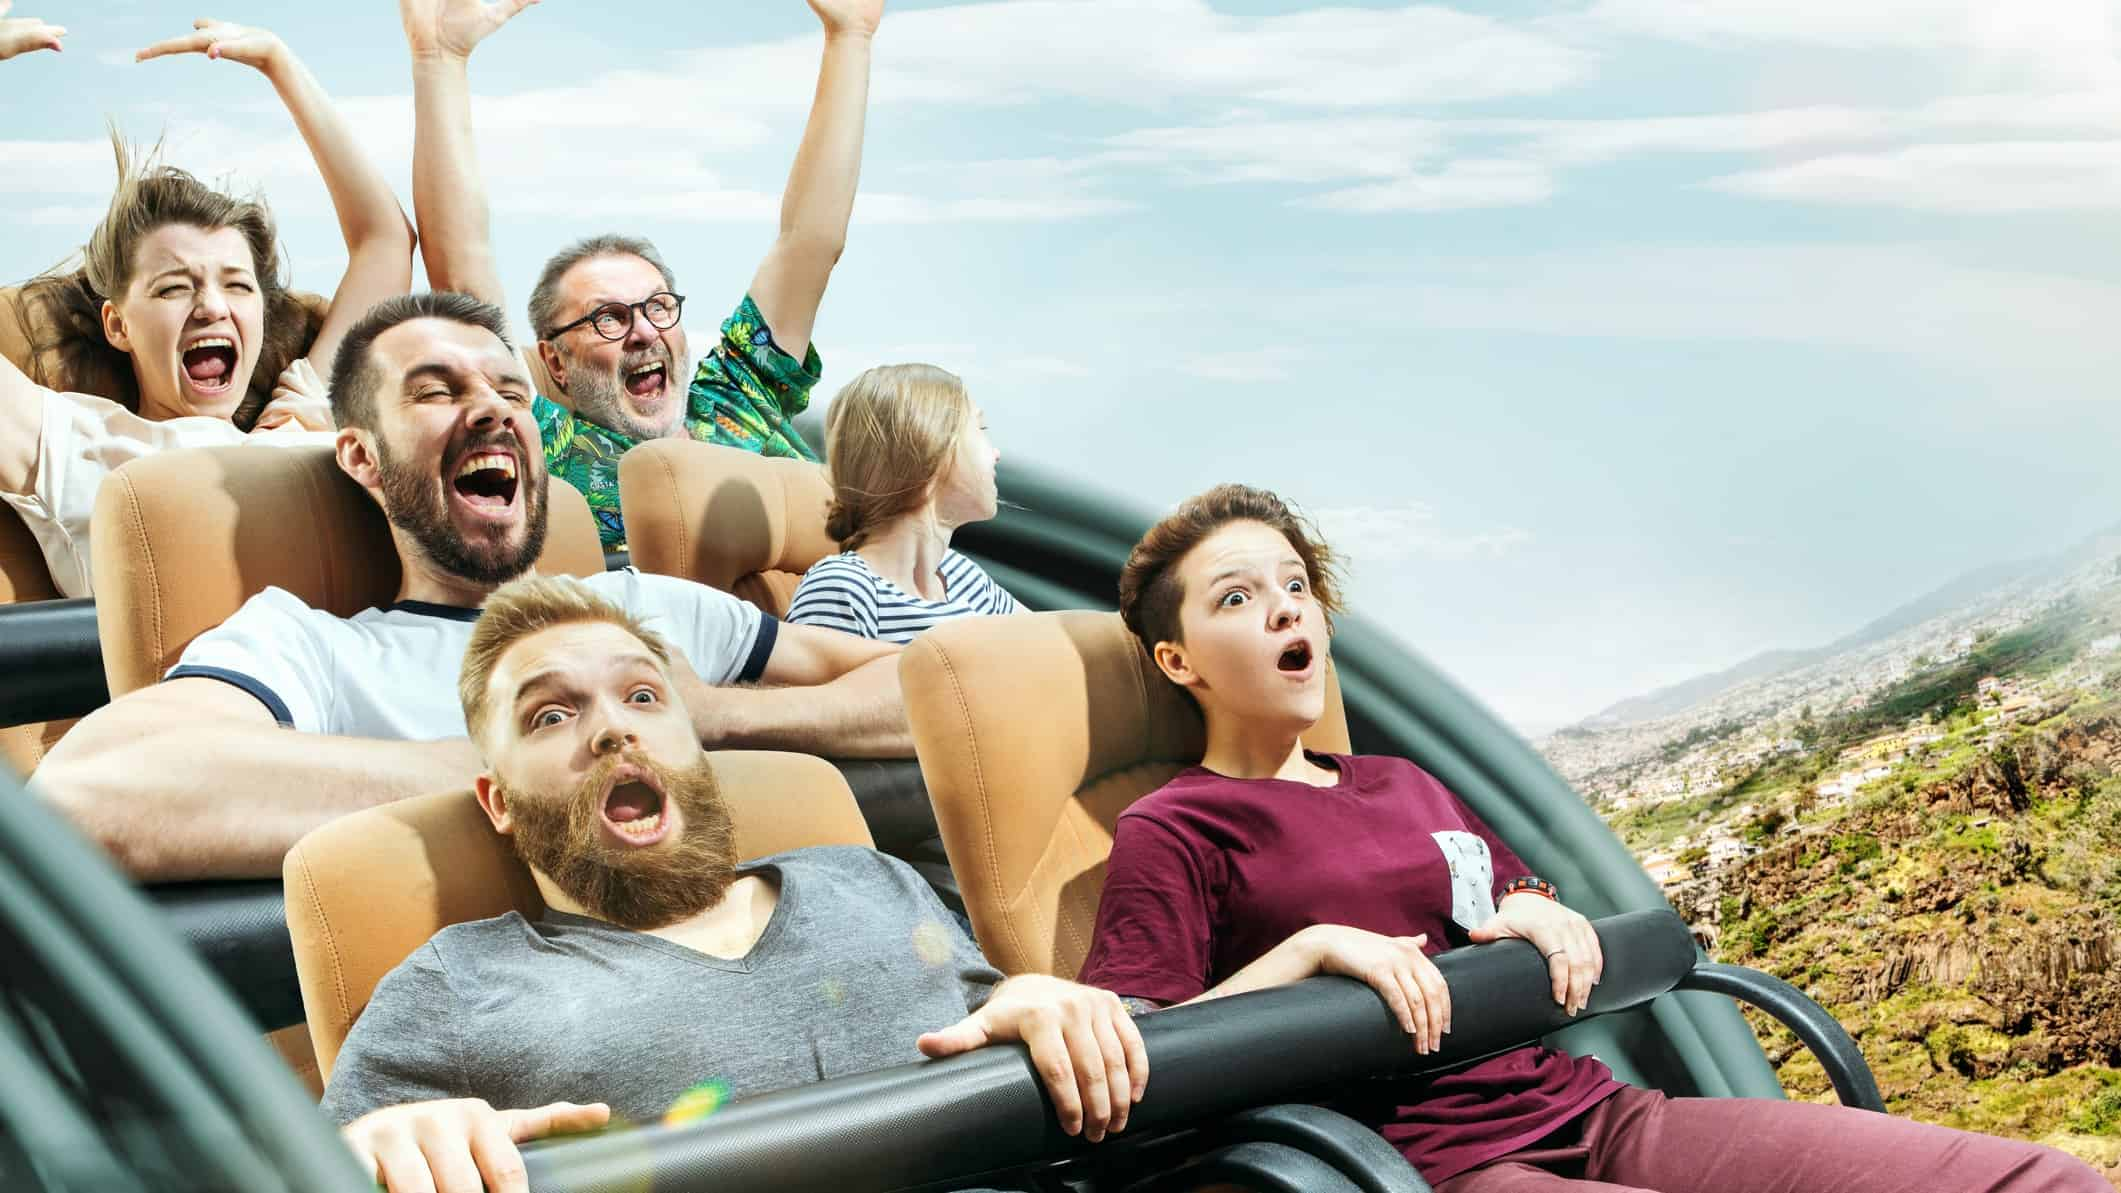 volatile as share price represented by scared looking people on roller coaster